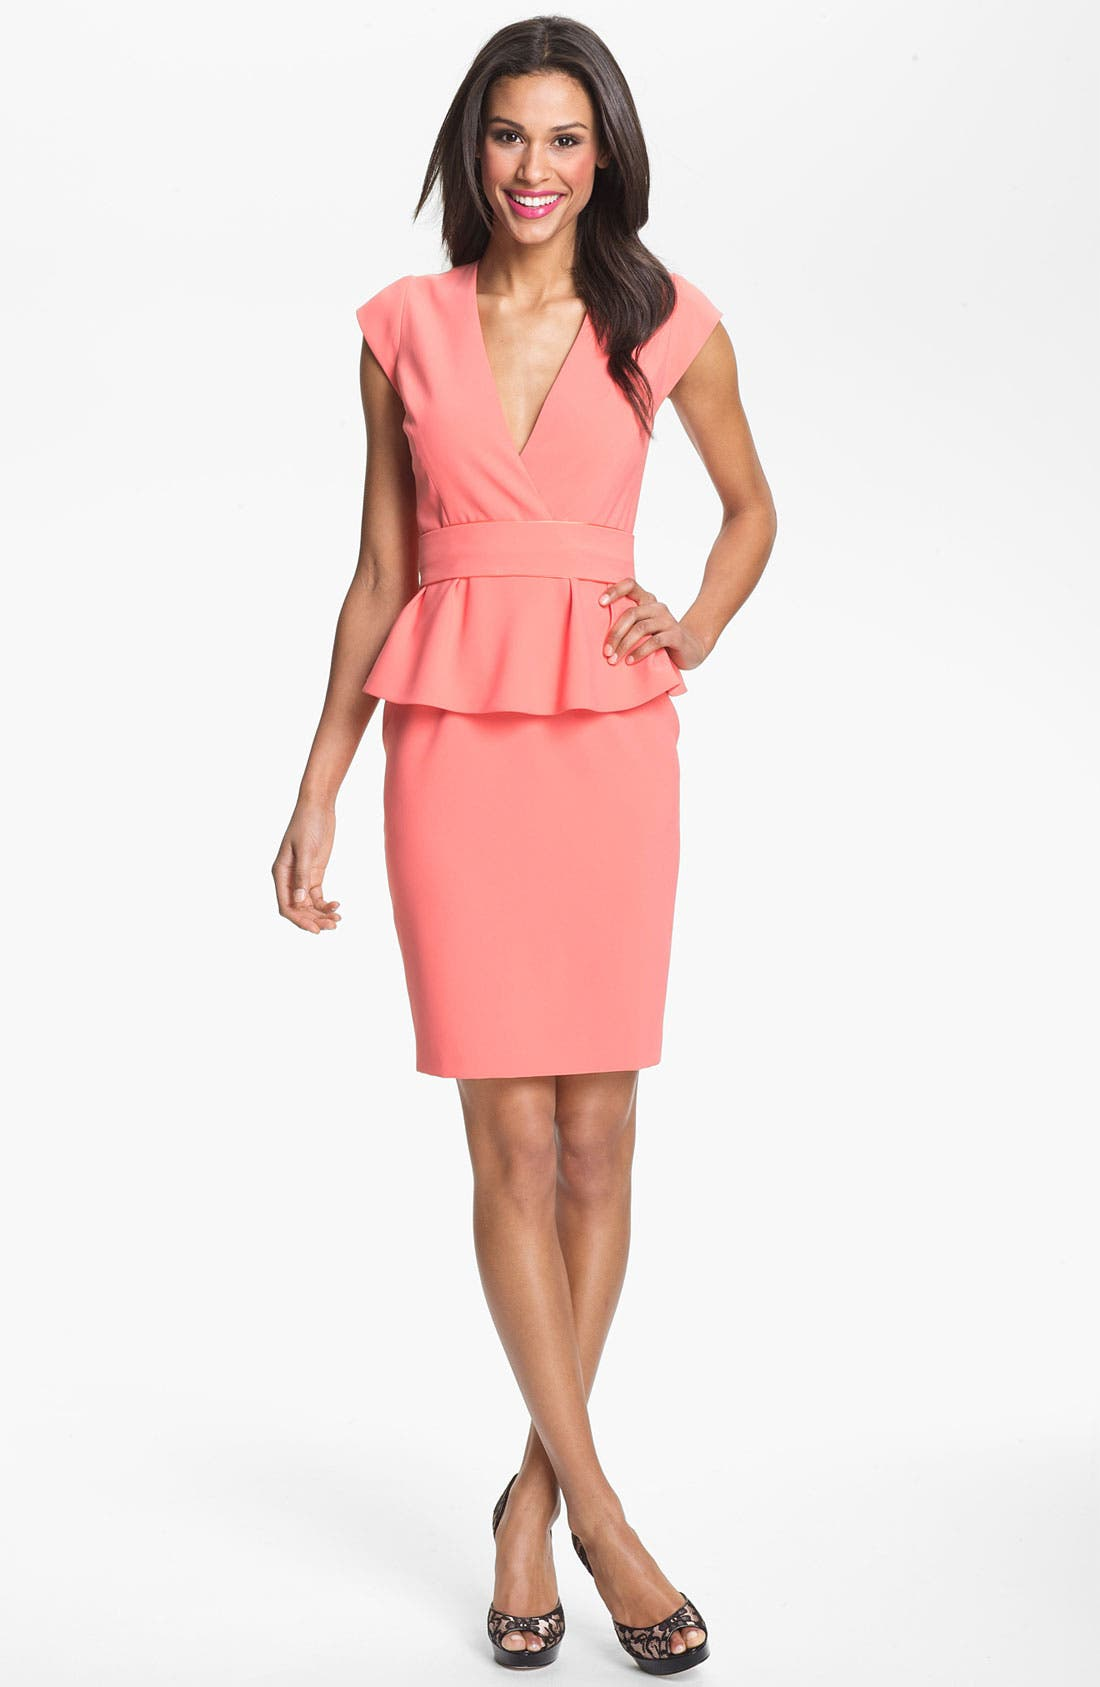 Alternate Image 1 Selected - ERIN erin fetherston Crepe Peplum Dress